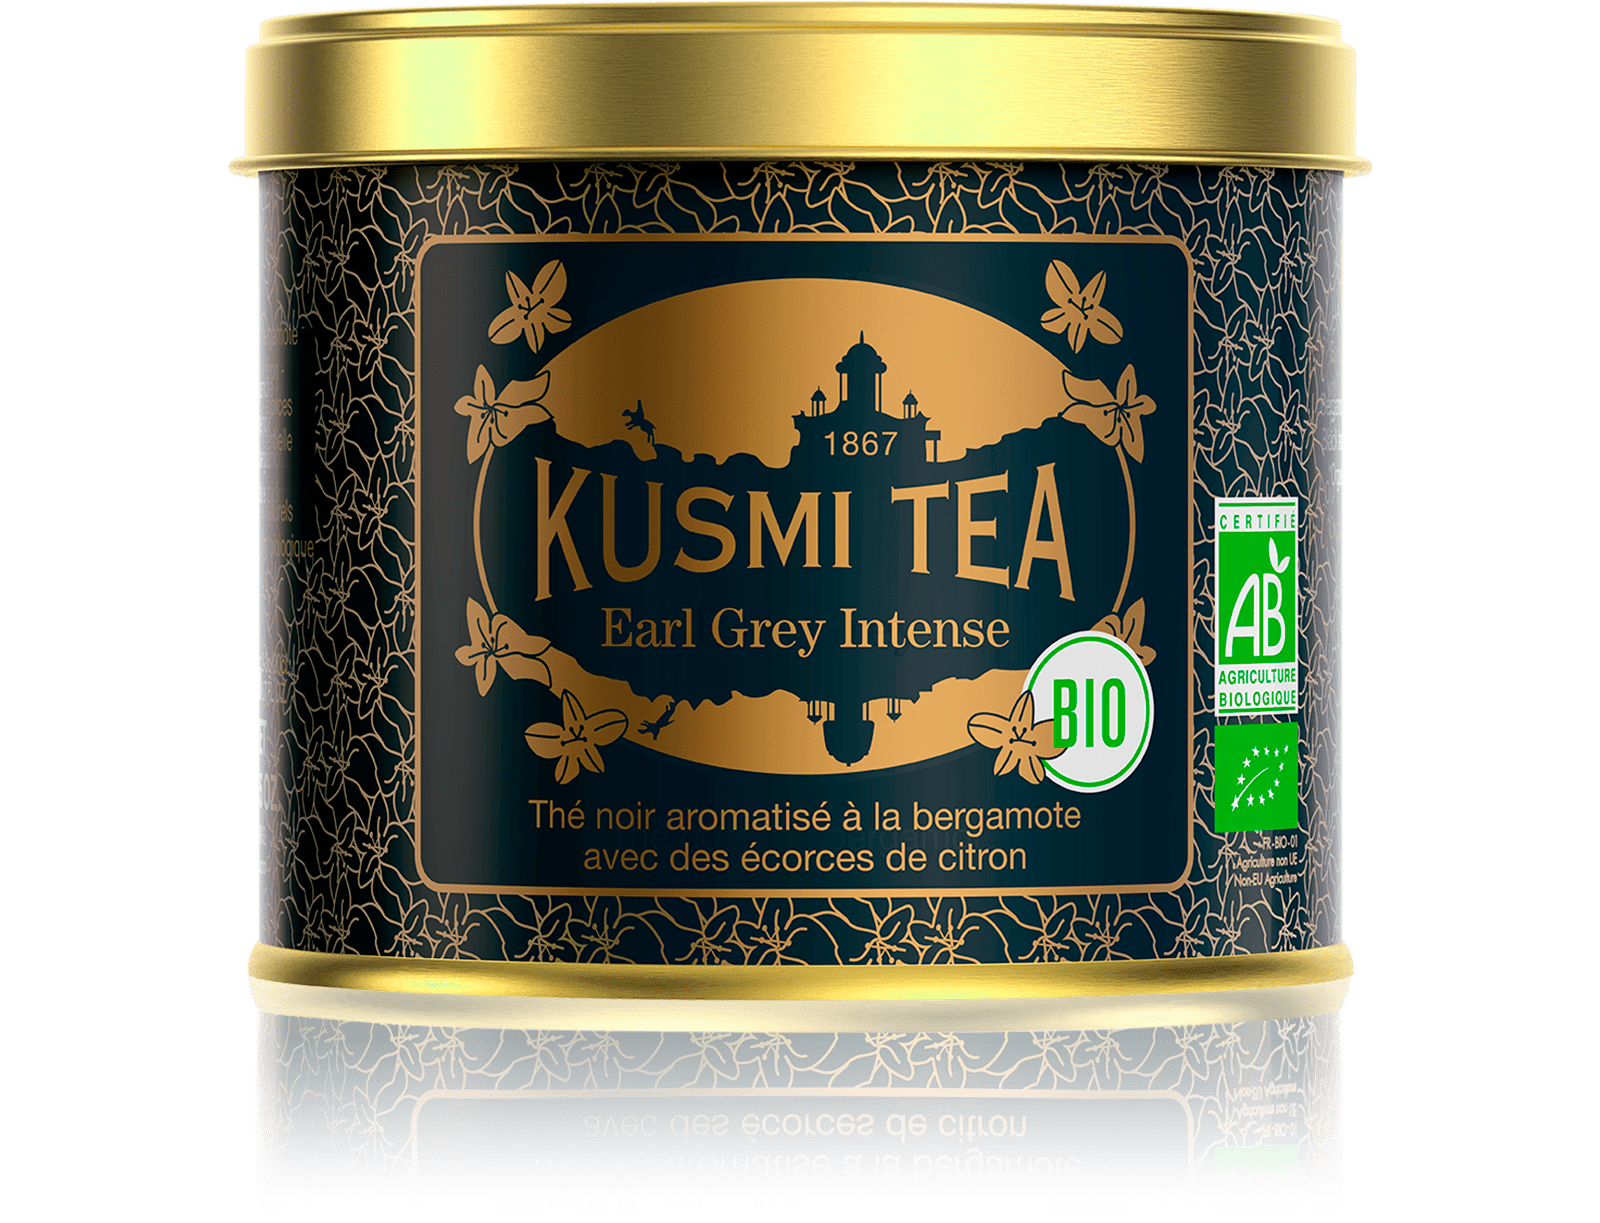 Earl Grey Intense bio - Vrac - Kusmi Tea